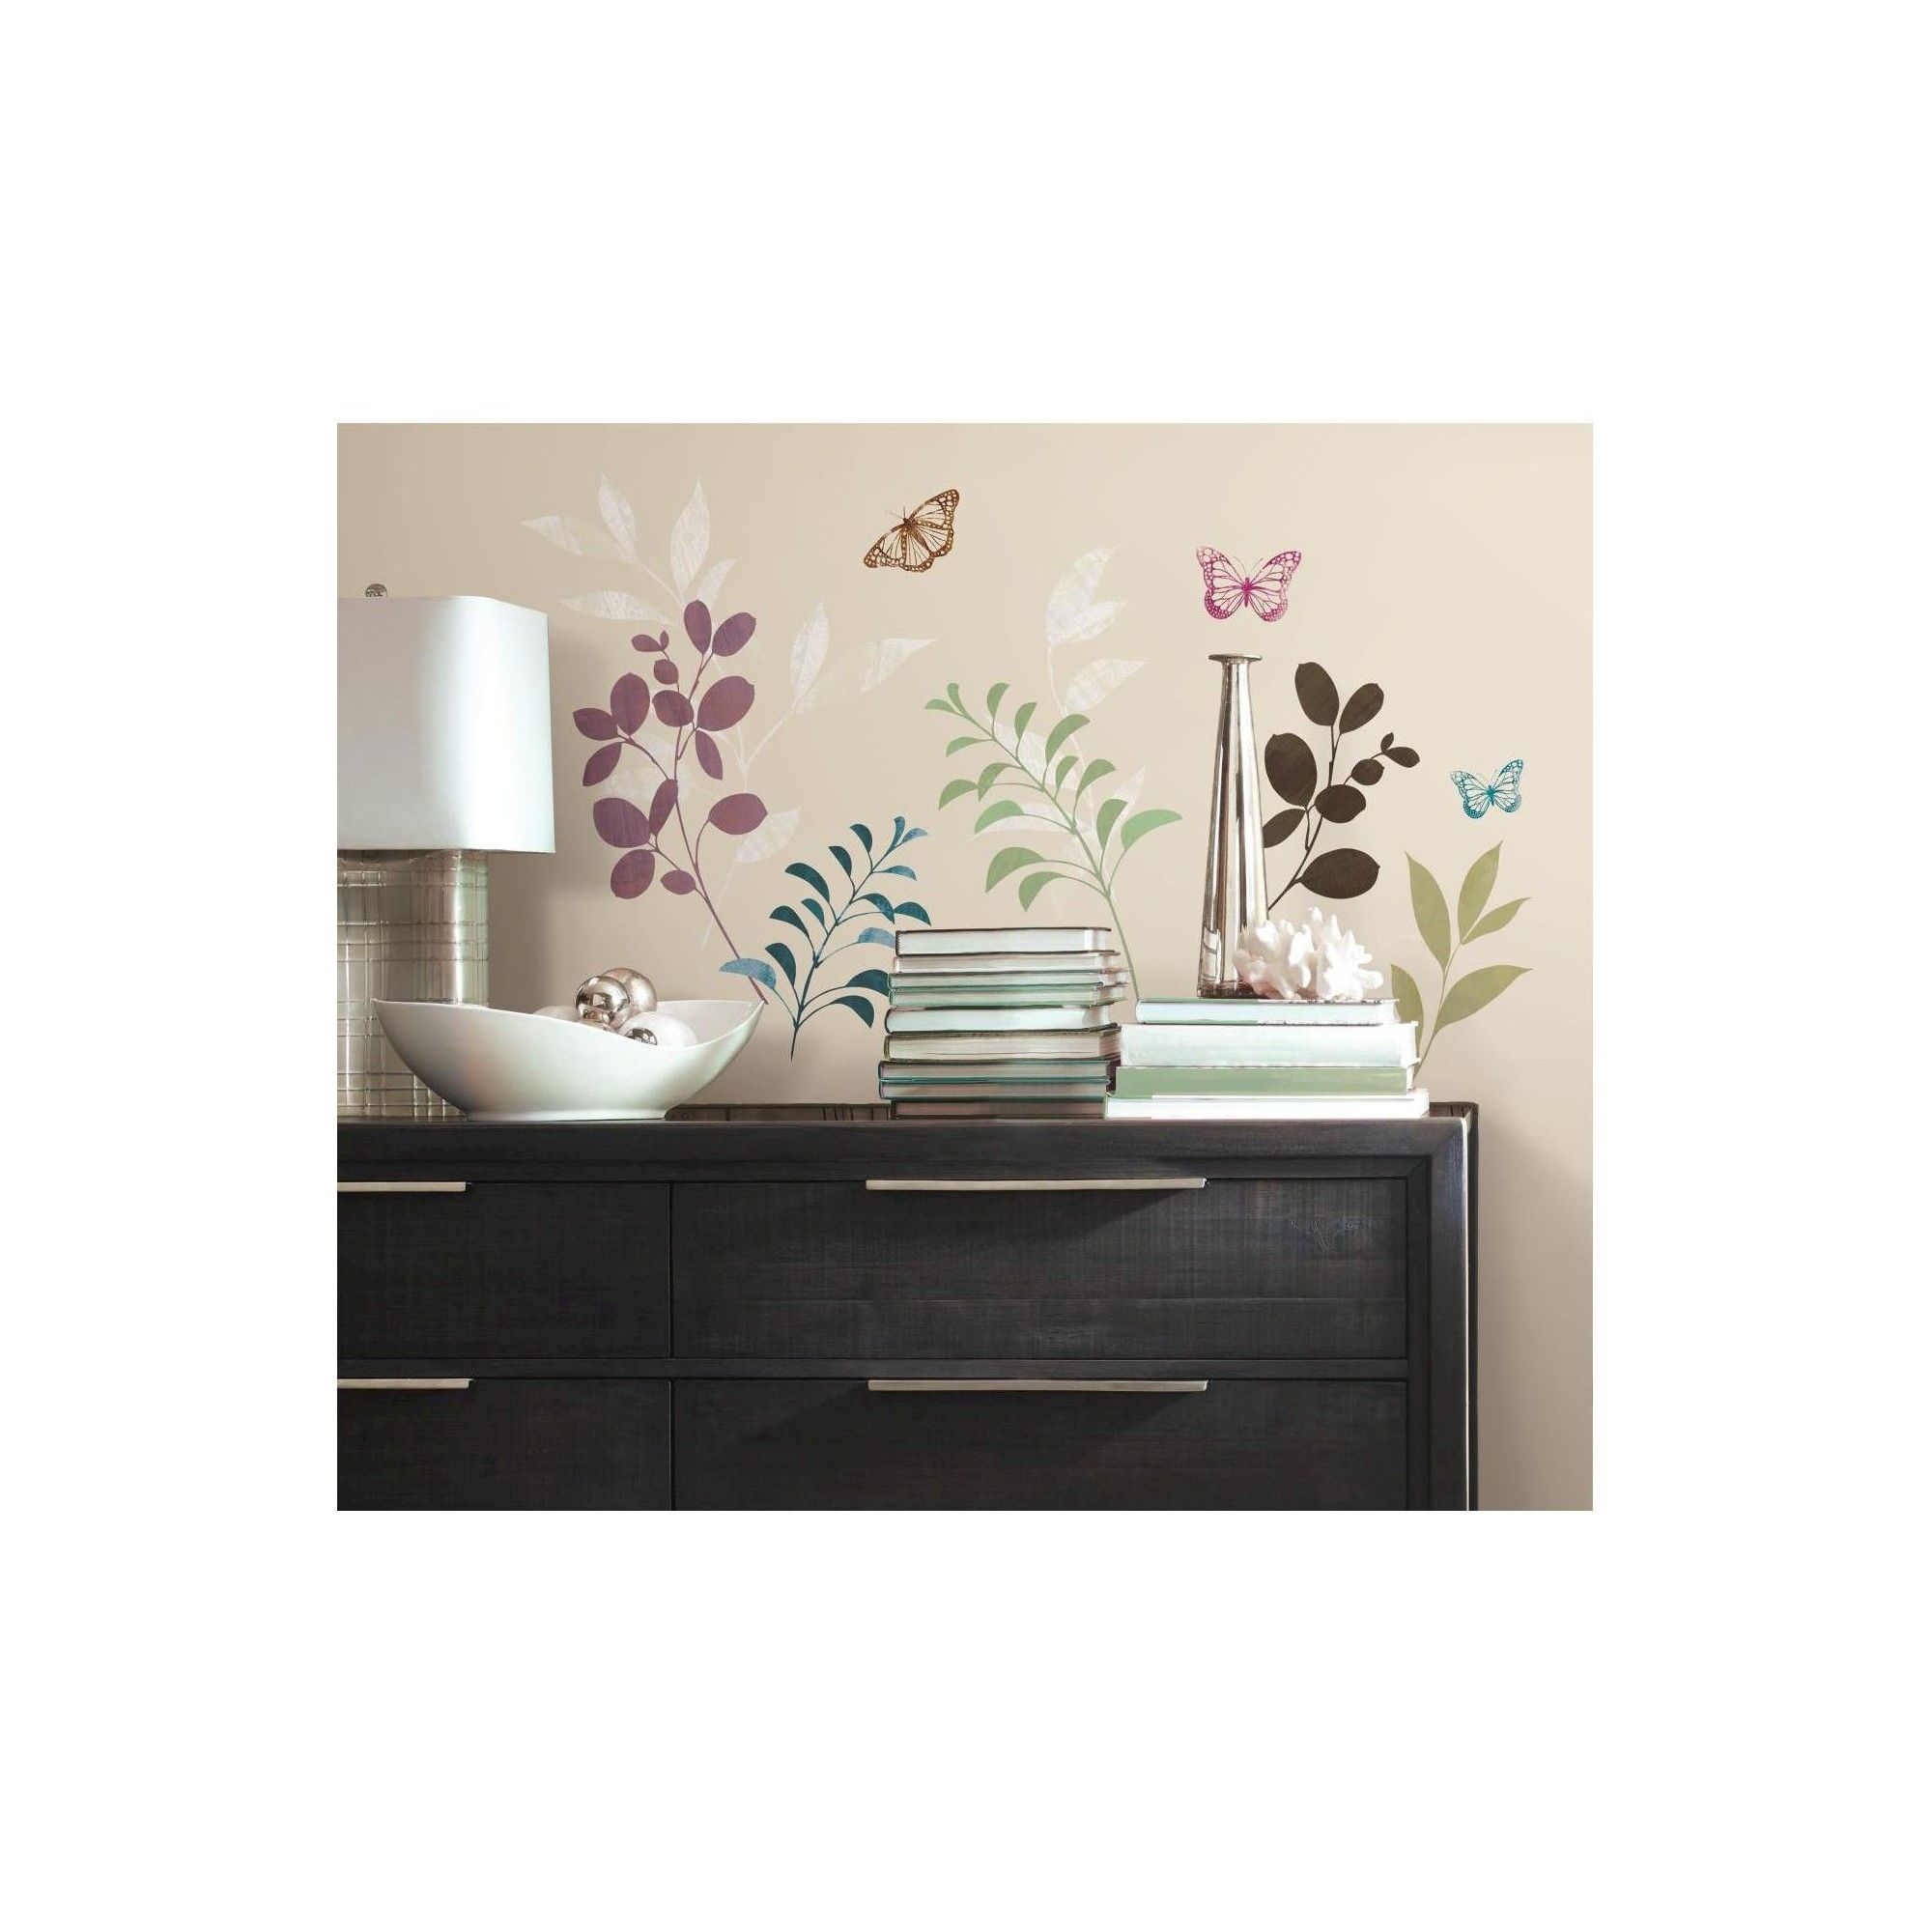 RoomMates Botanical Butterfly Peel and Stick Wall Decals